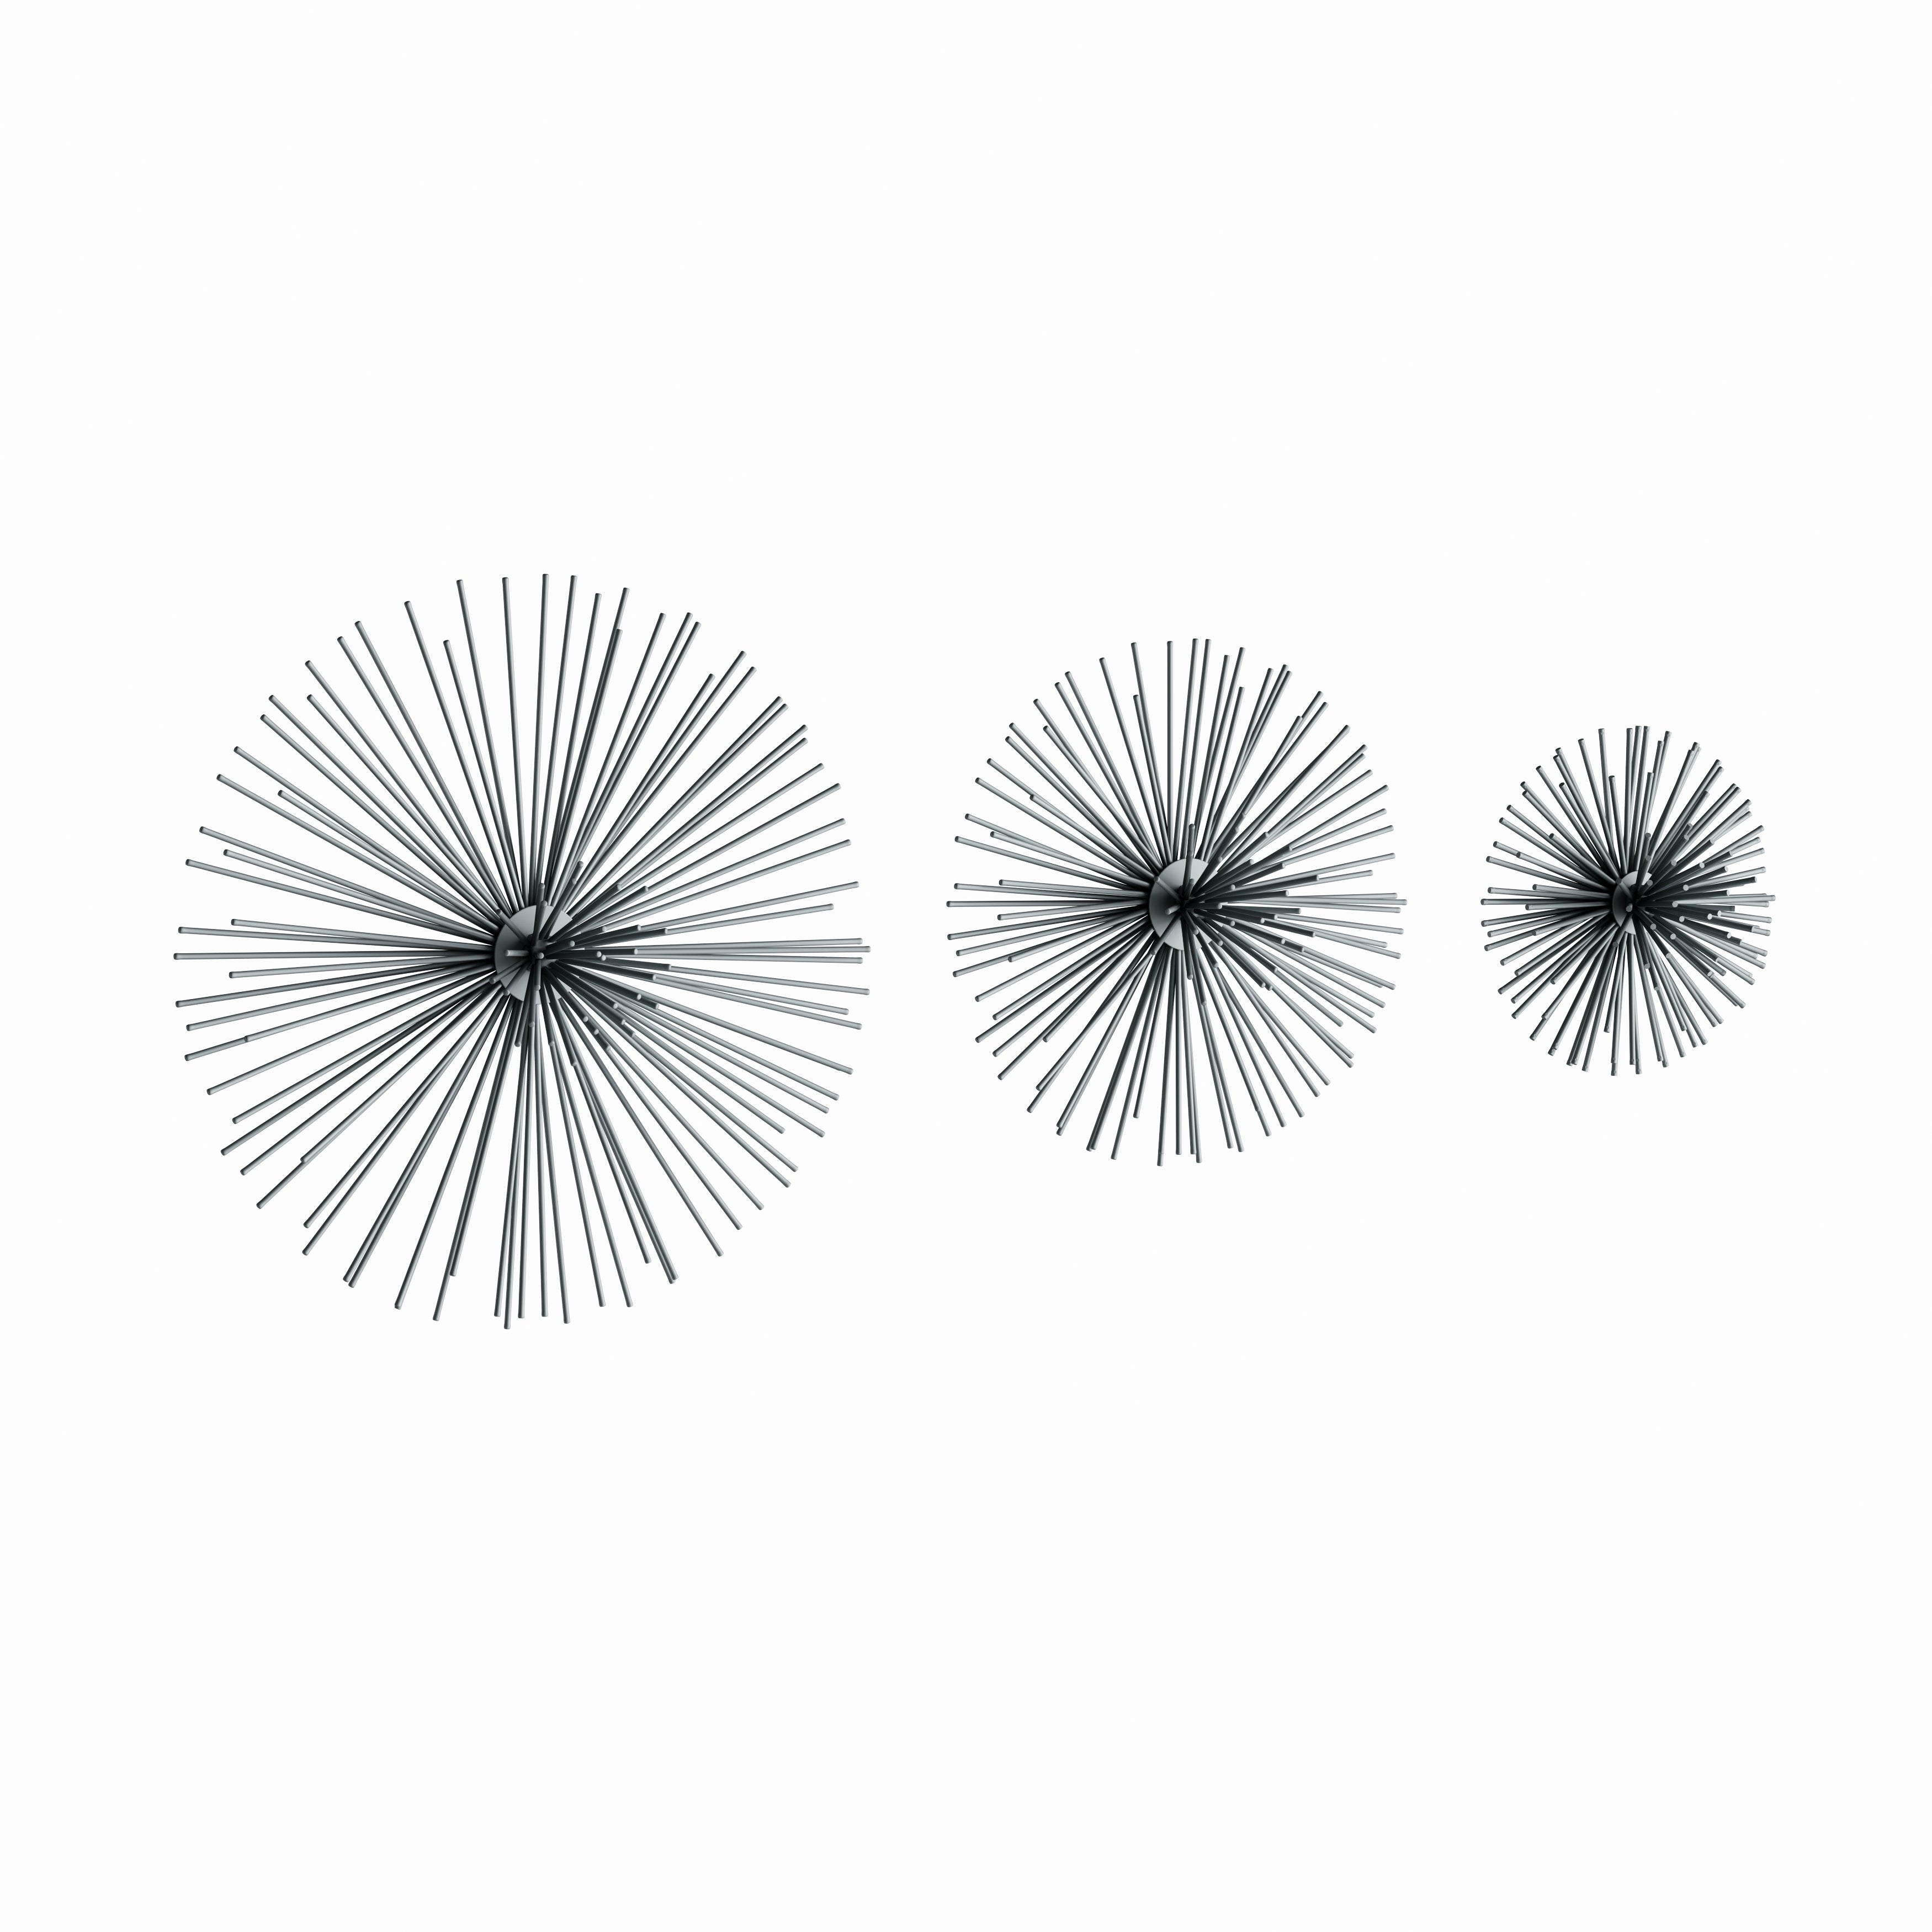 Contemporary 3D Silver Metal Starburst Wall Decor Sculptures Set Of 3 within 2 Piece Starburst Wall Decor Sets (Image 19 of 30)